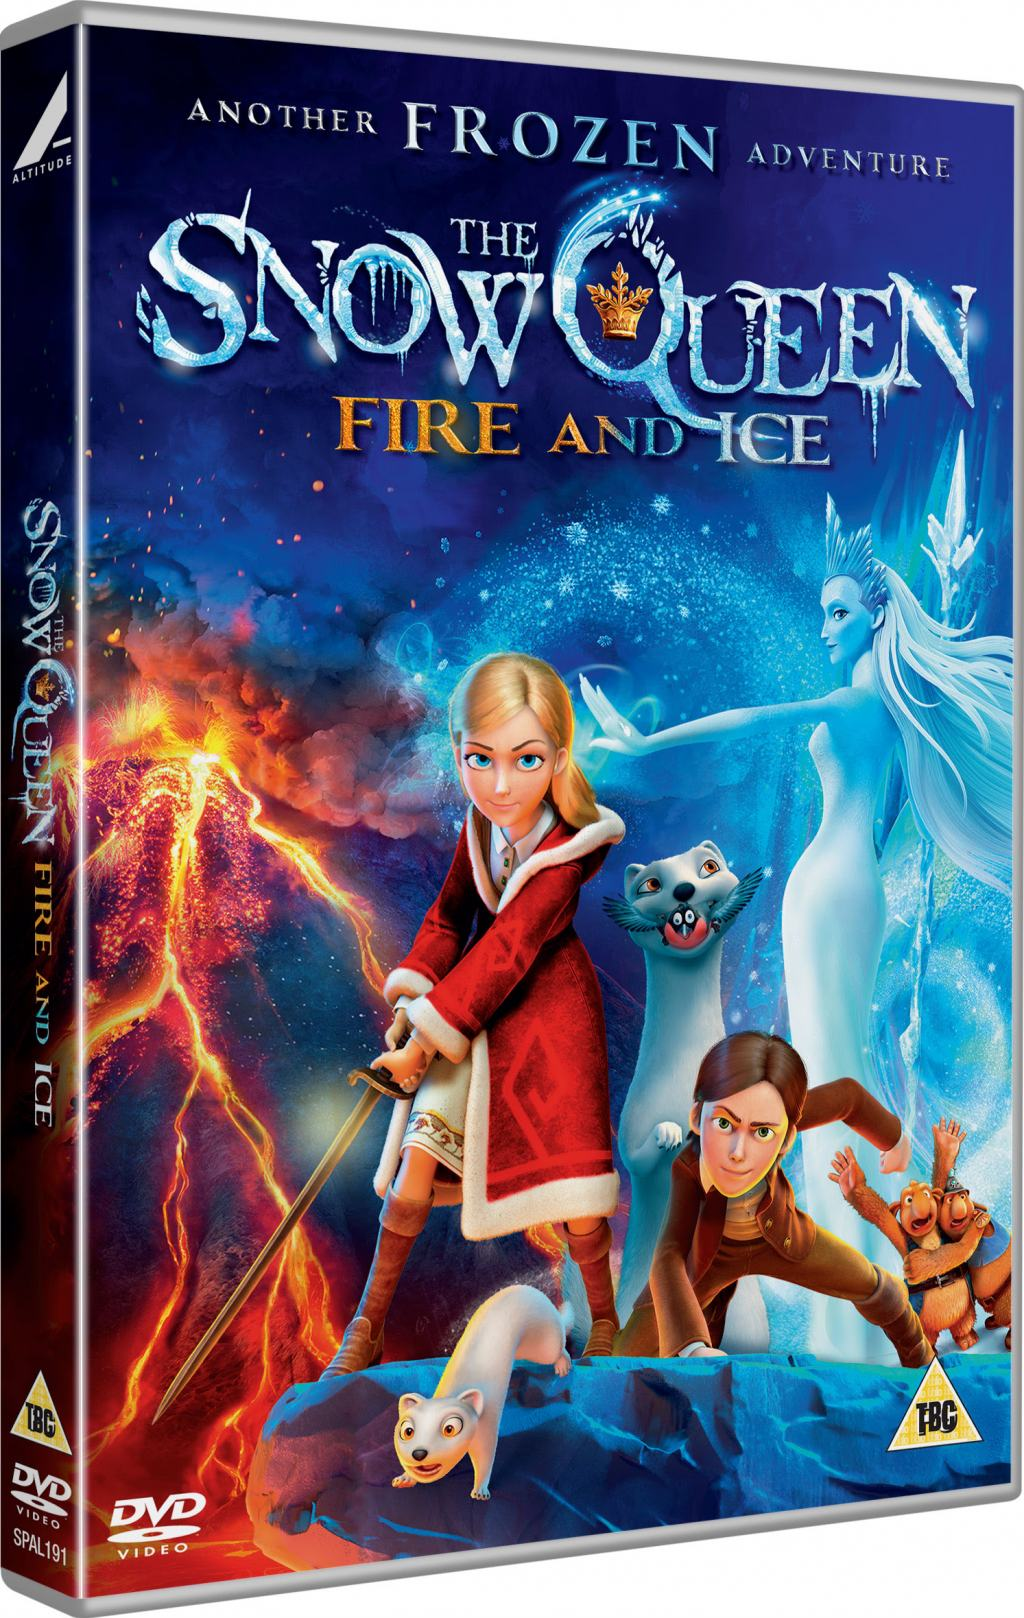 The Snow Queen: Fire And Ice {Review}